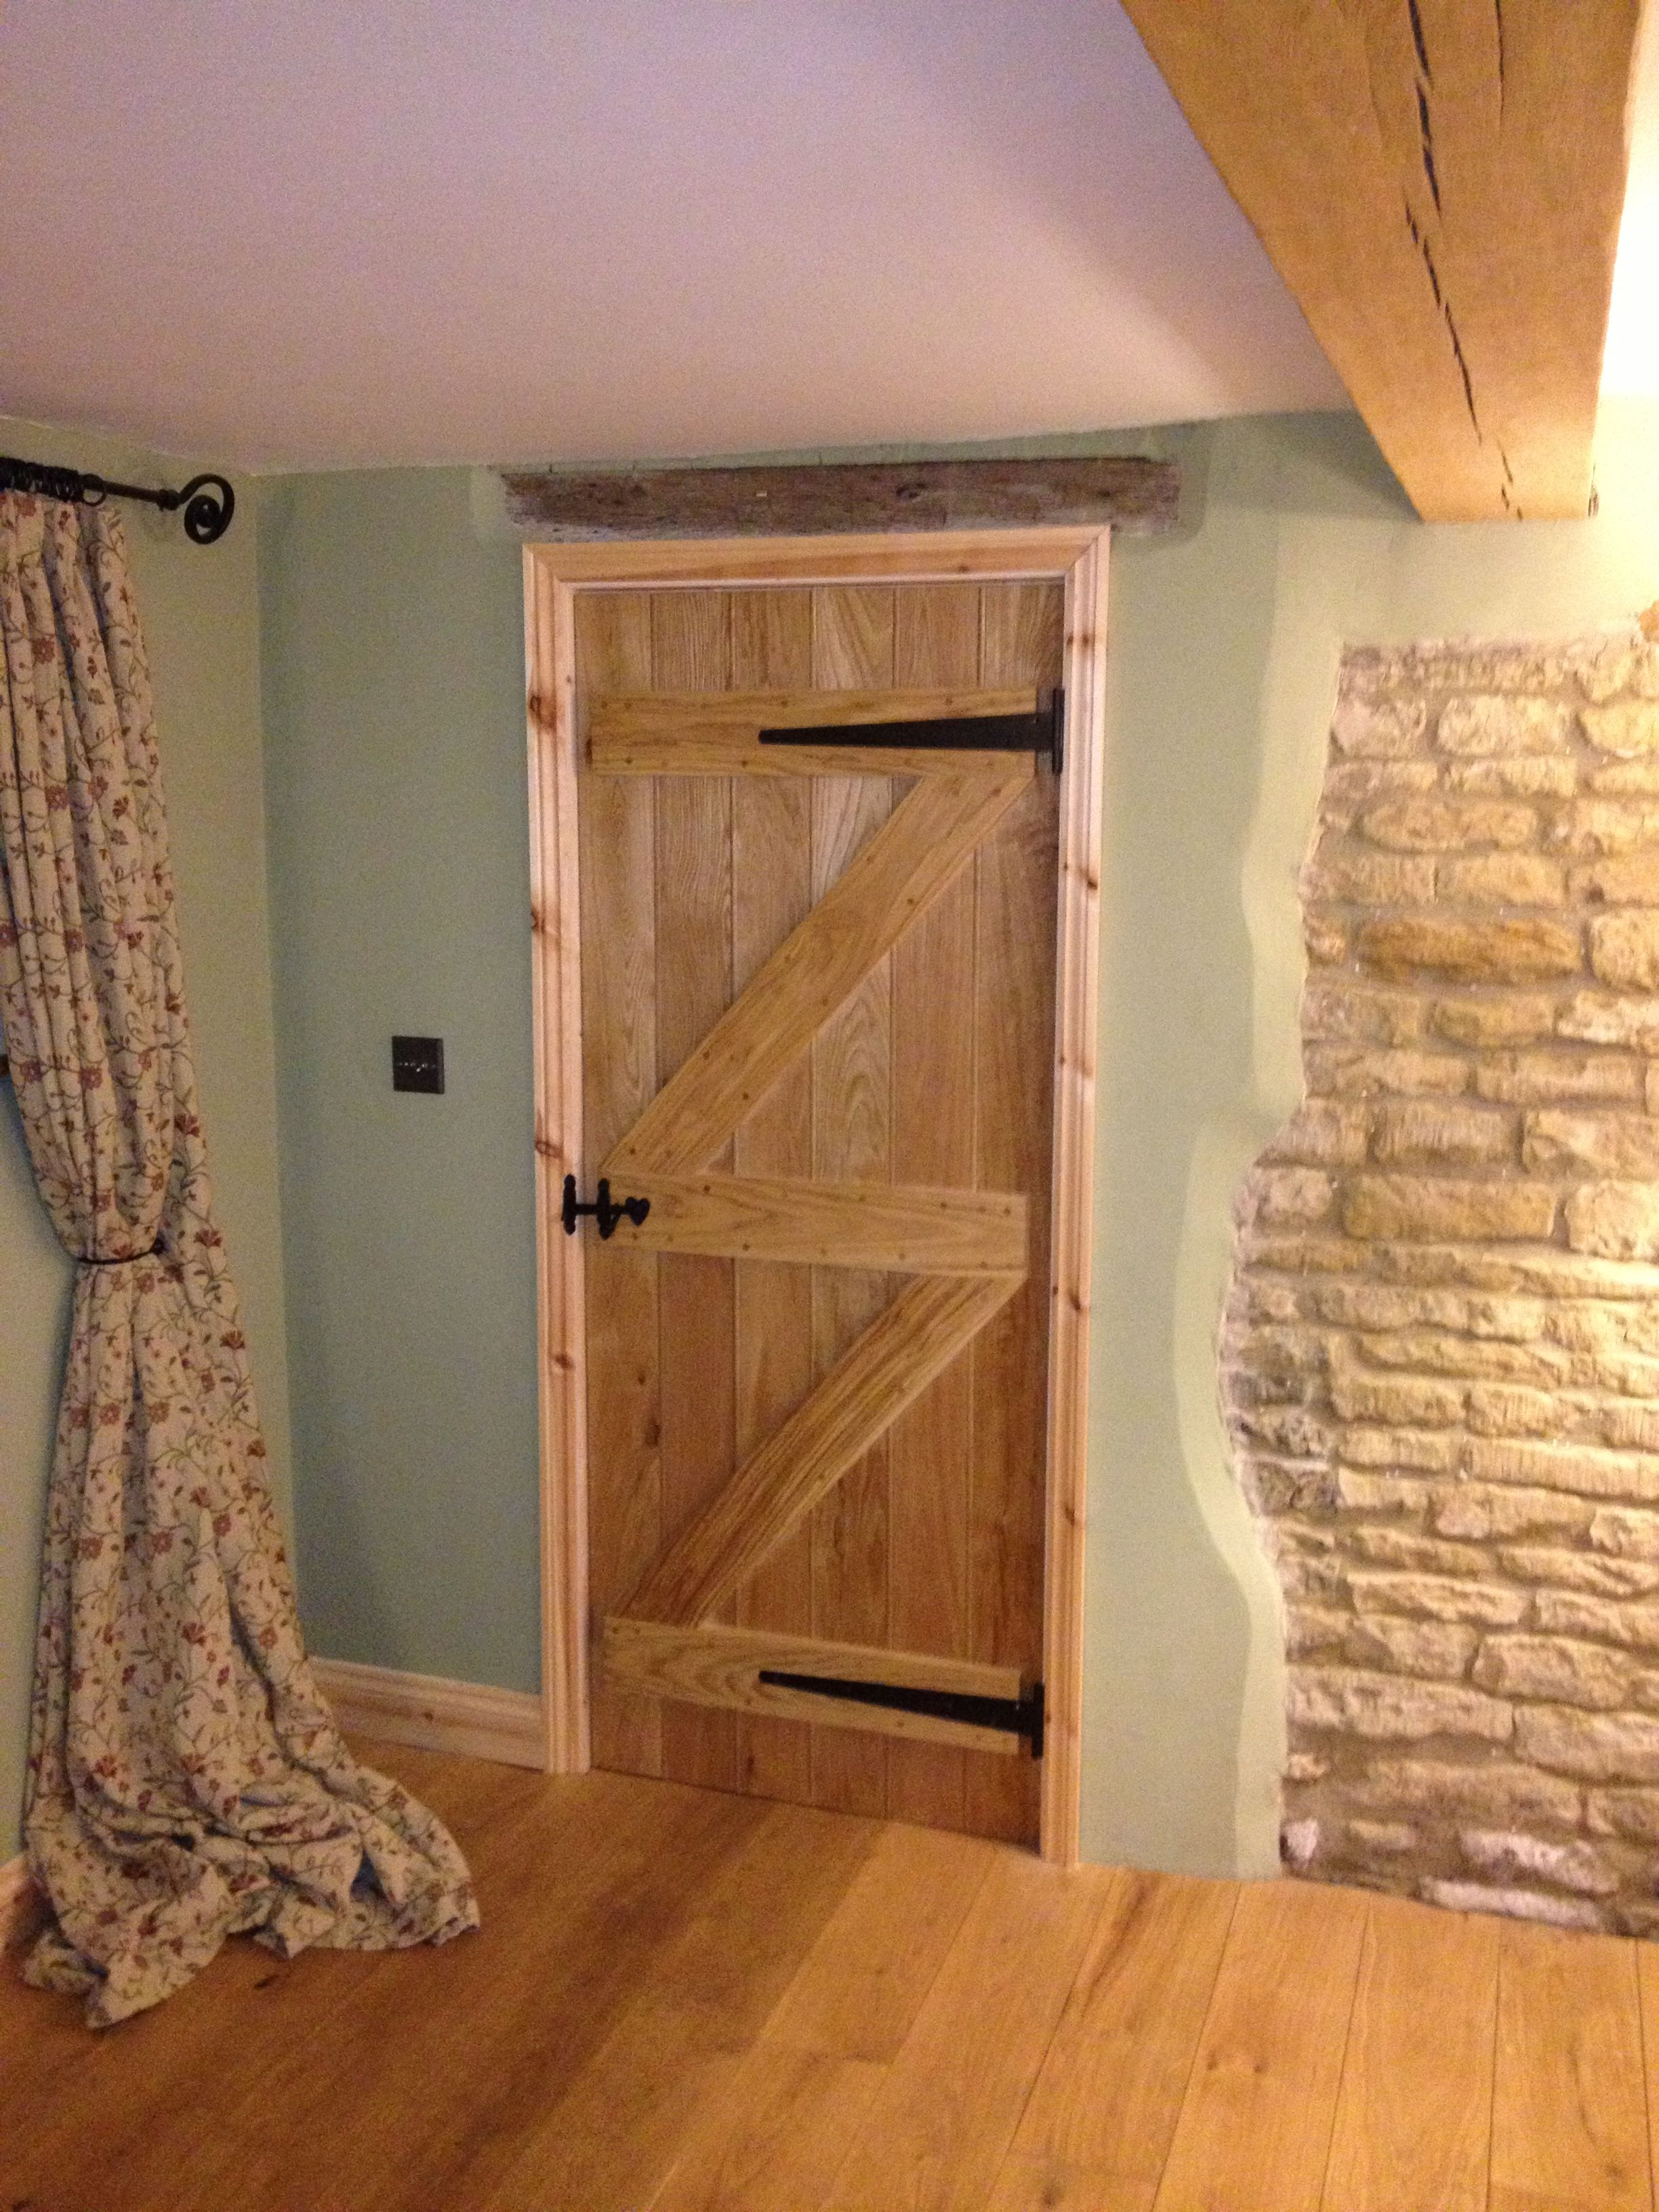 Wooden Internal Doors With: Ledge And Brace Cottage Door, Solid Oak #OakDoors #Ledge